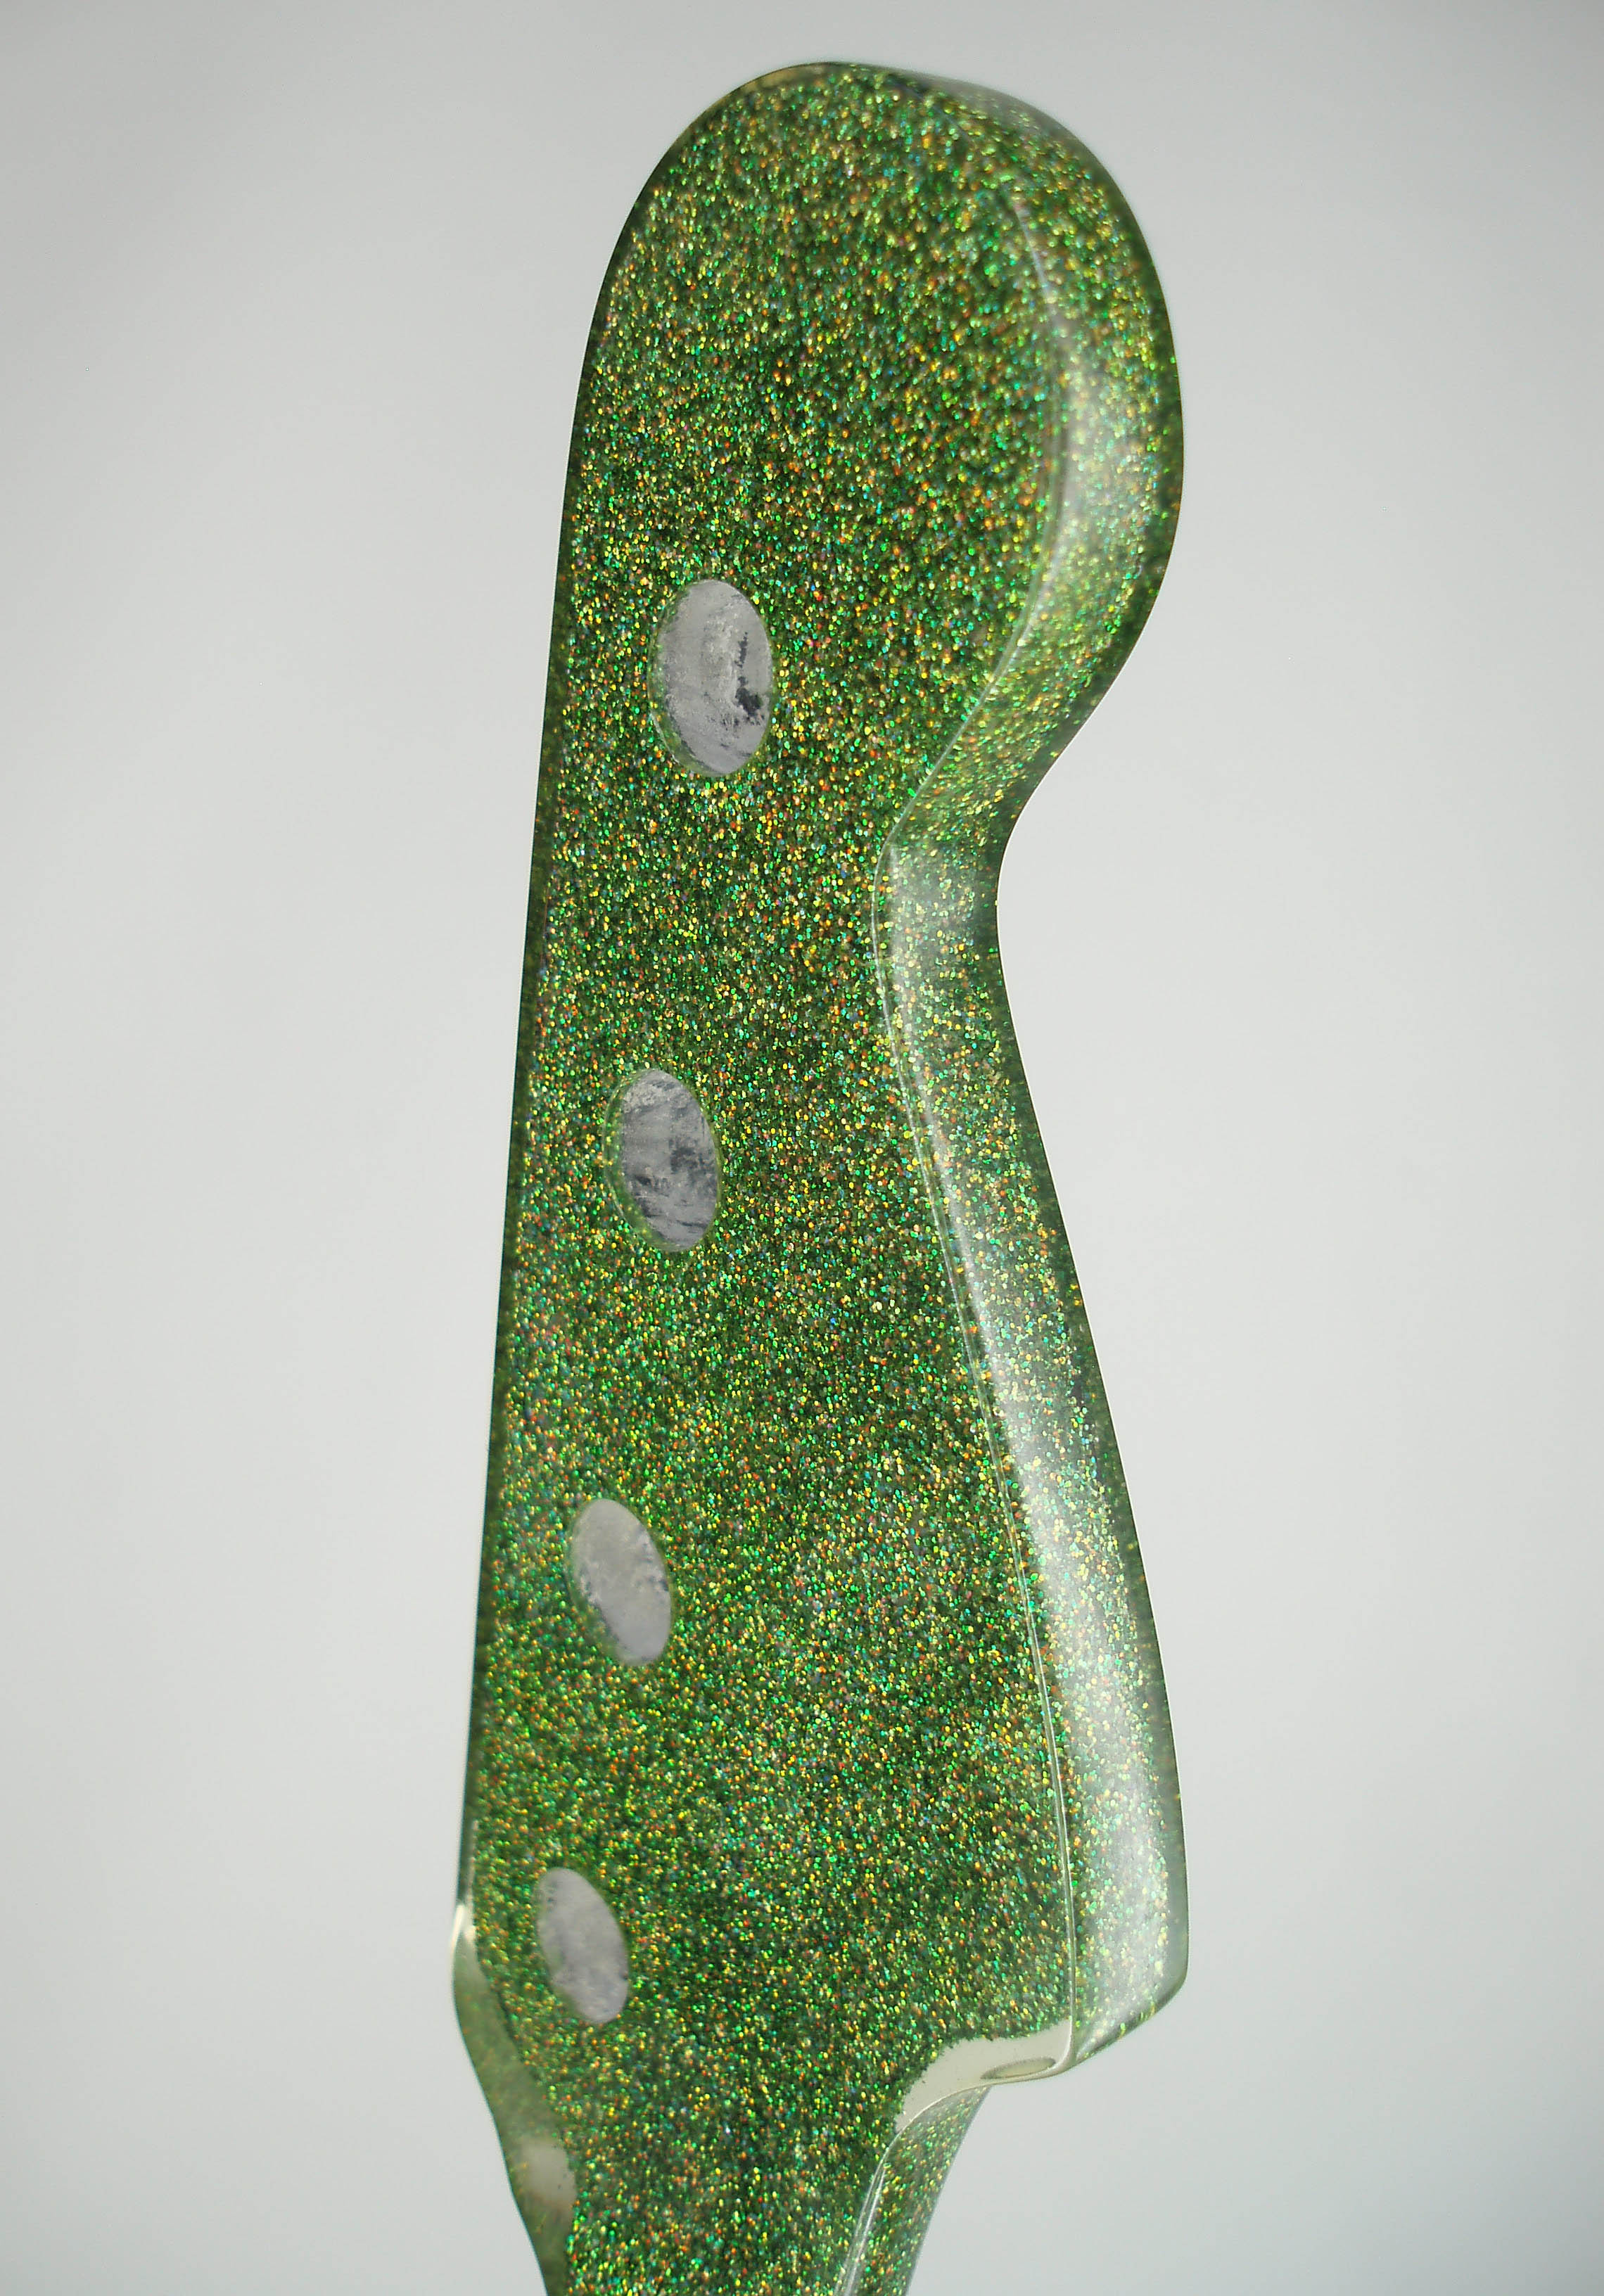 Green Holographite Finish close-up